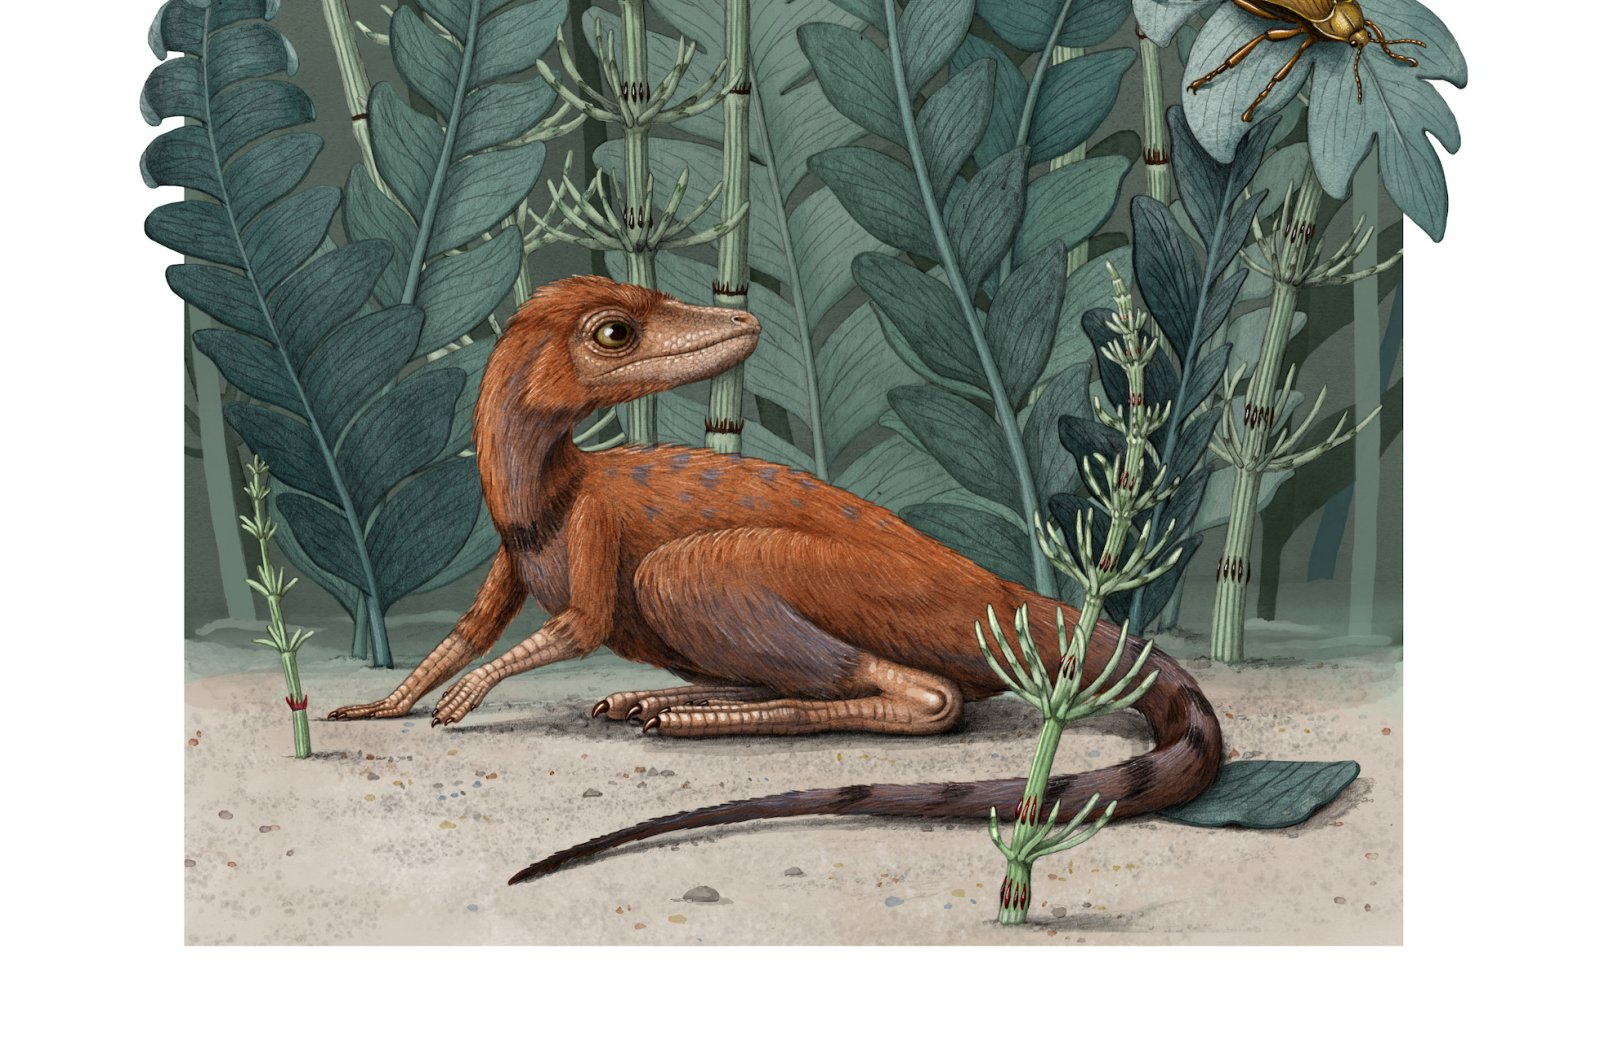 Kongonaphon kely, a tiny reptile believed to be an ancestor of dinosaurs and pterosaurs, is seen in its natural environment in the Triassic Period in an undated illustration provided on July 6, 2020. (Alex Boersma/Handout via REUTERS)